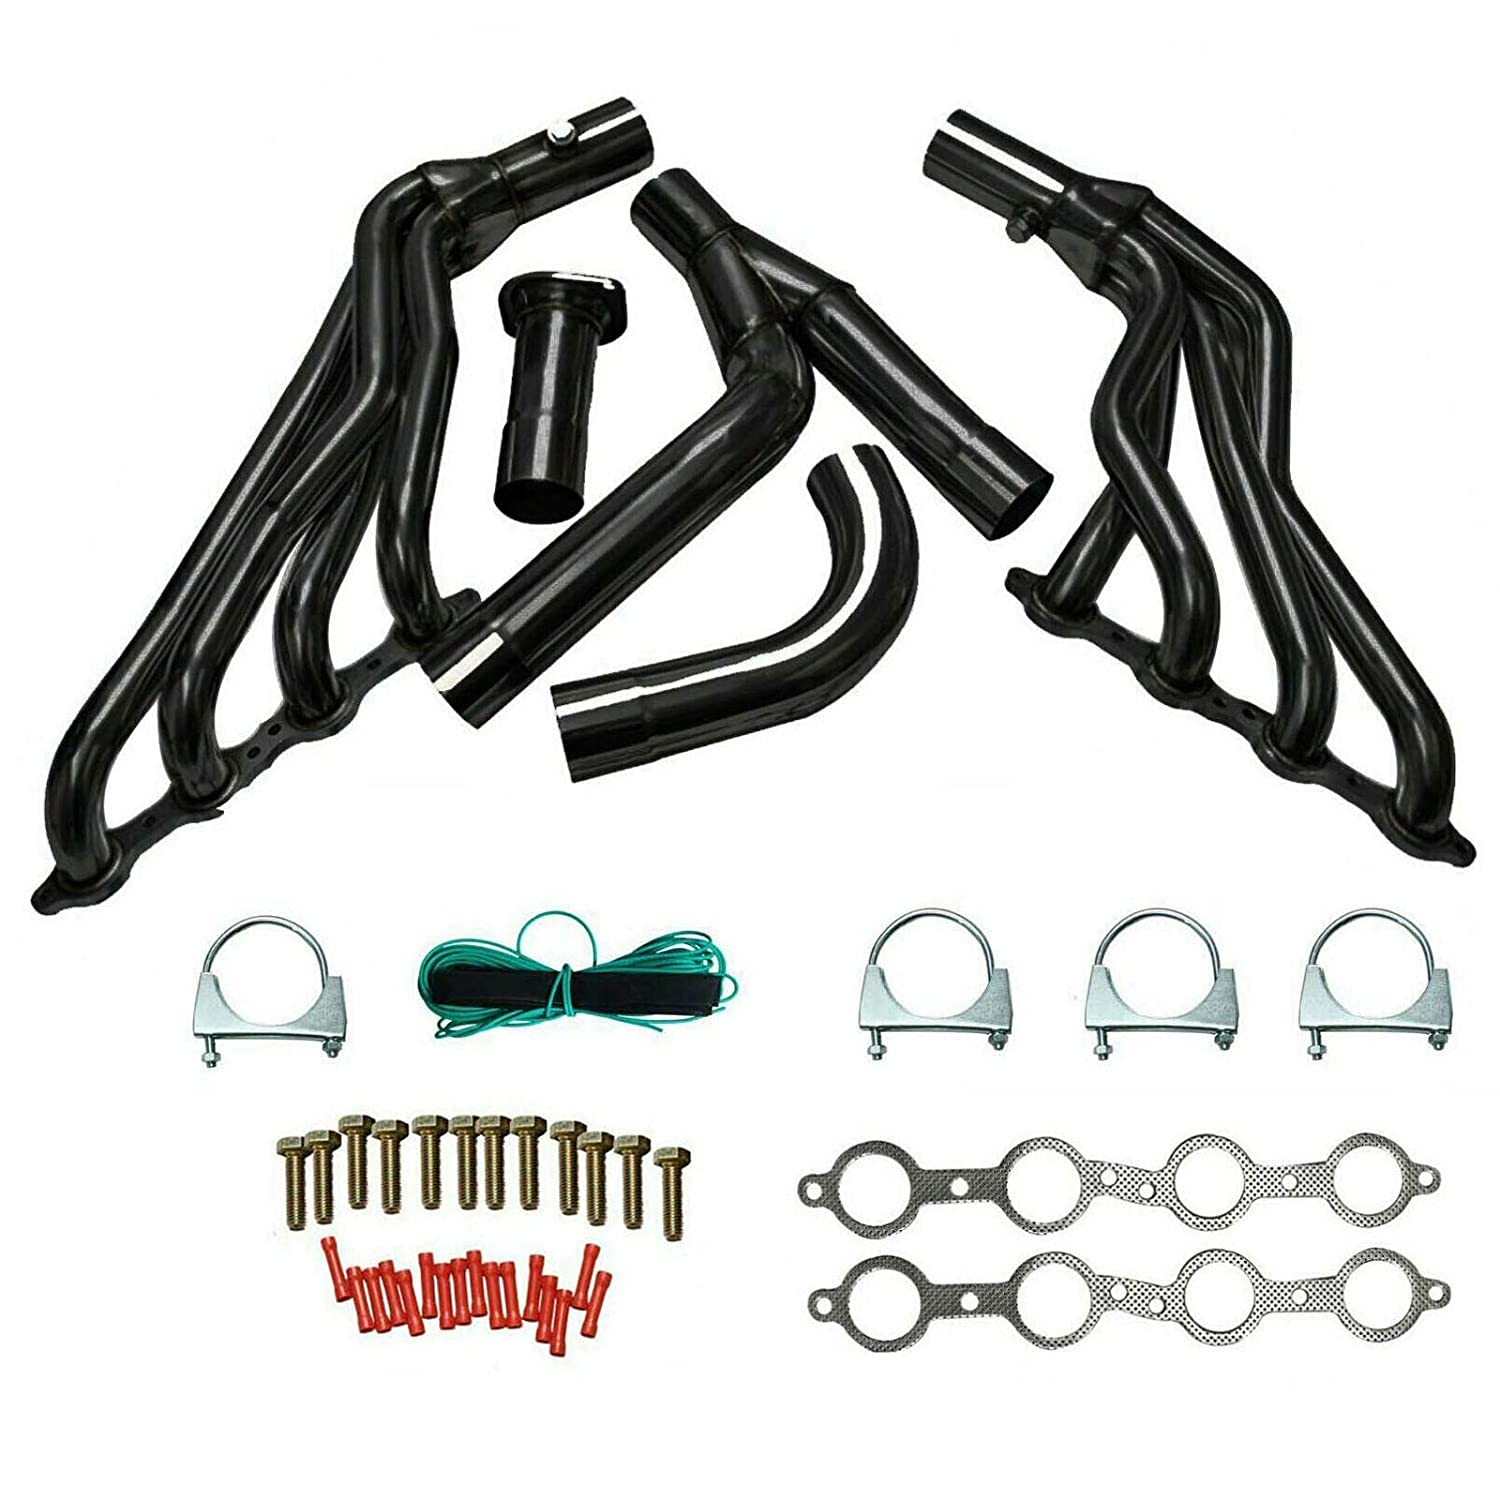 JIUAUTOPARTS Black Tube Exhaust Manifold Header /& Y-Pipe Kit Stainless Steel Fit for 1999-2006 Chevy GMC GMT800 Silverado Sierra 1500